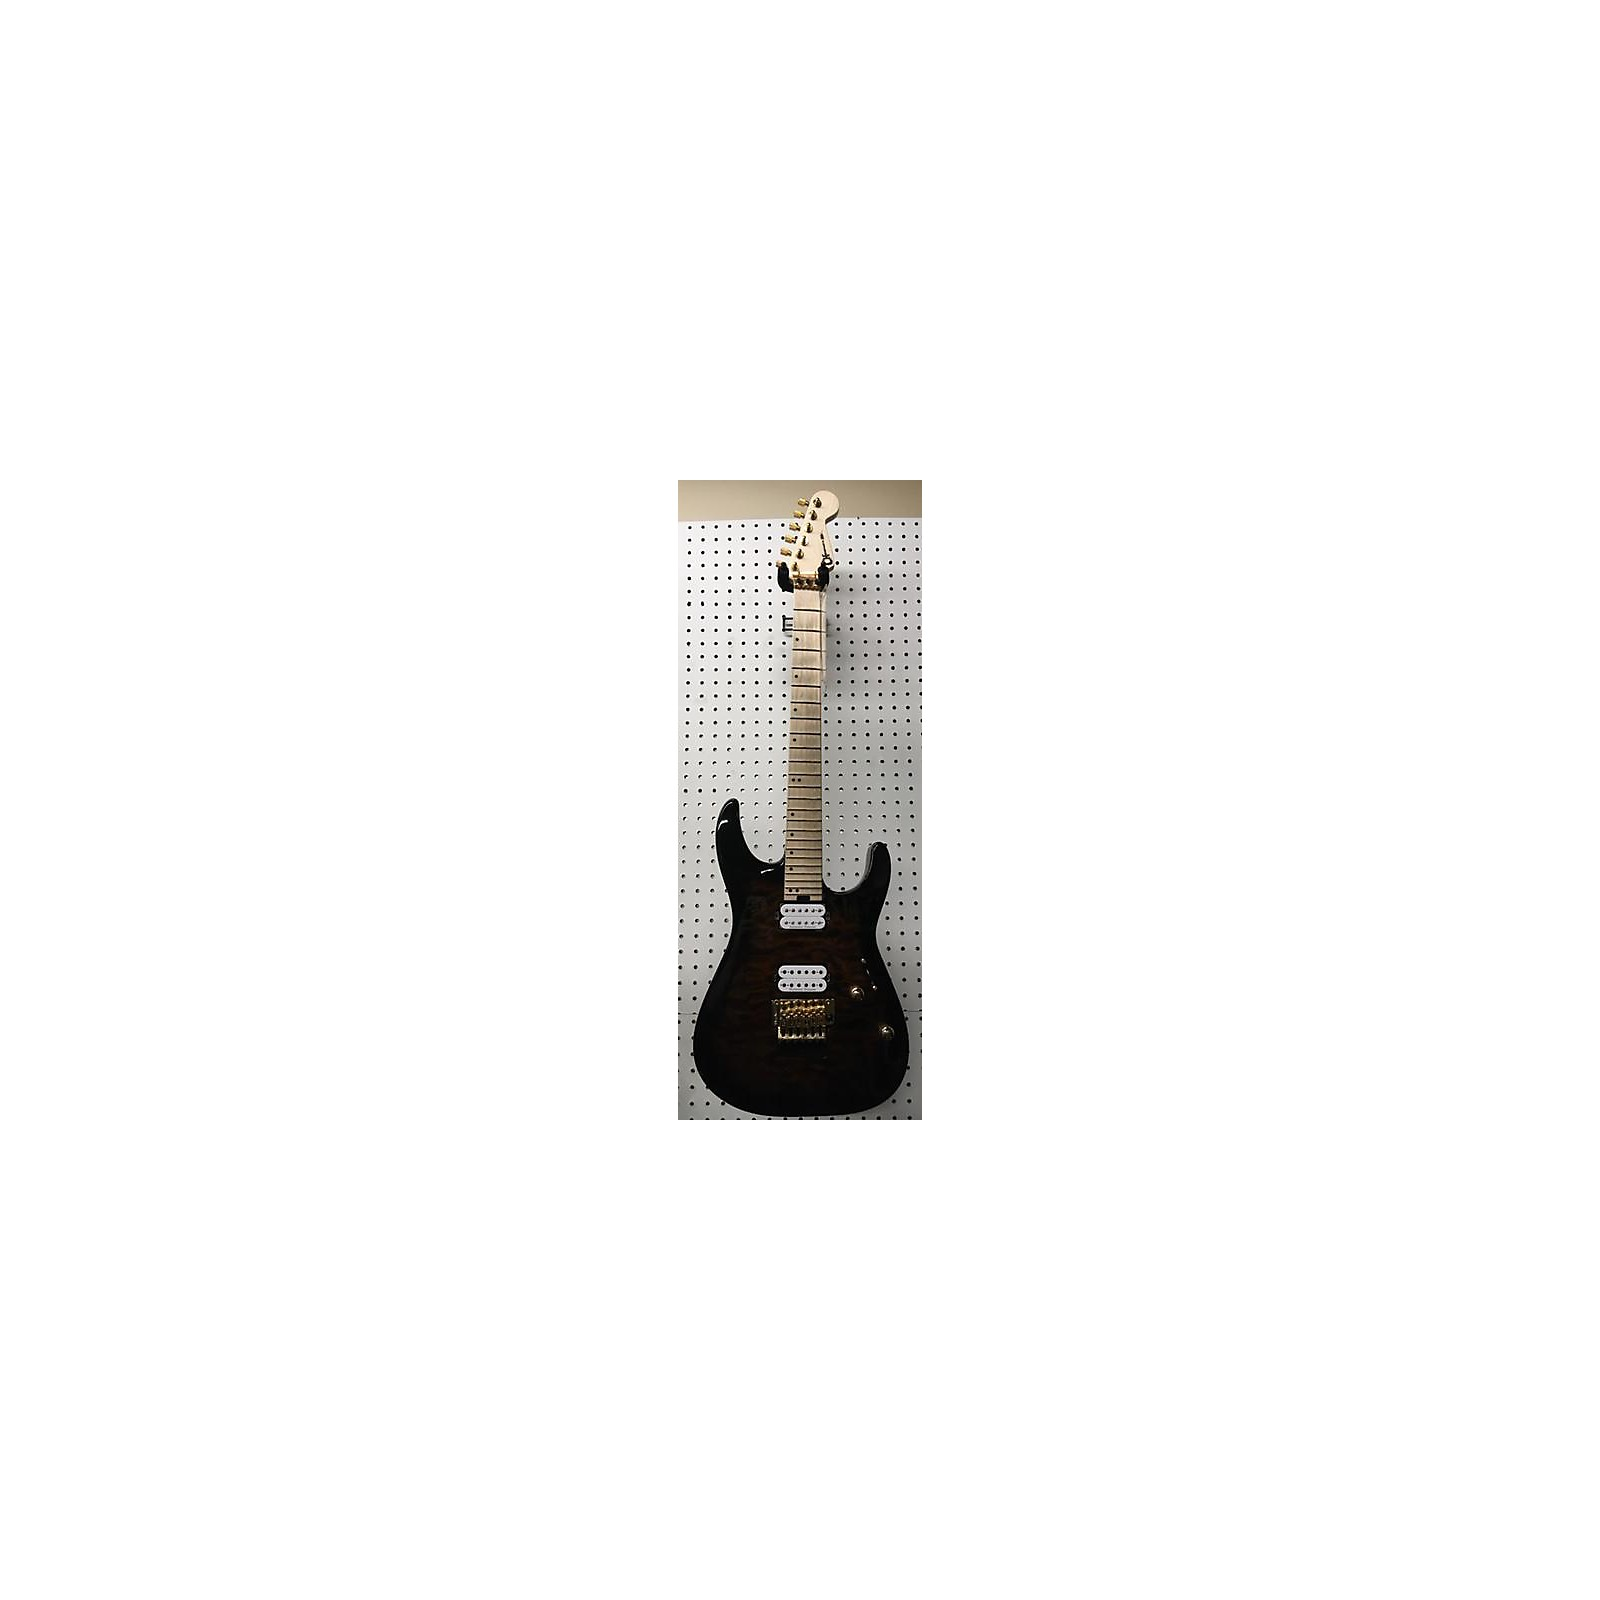 Charvel DK24 Solid Body Electric Guitar